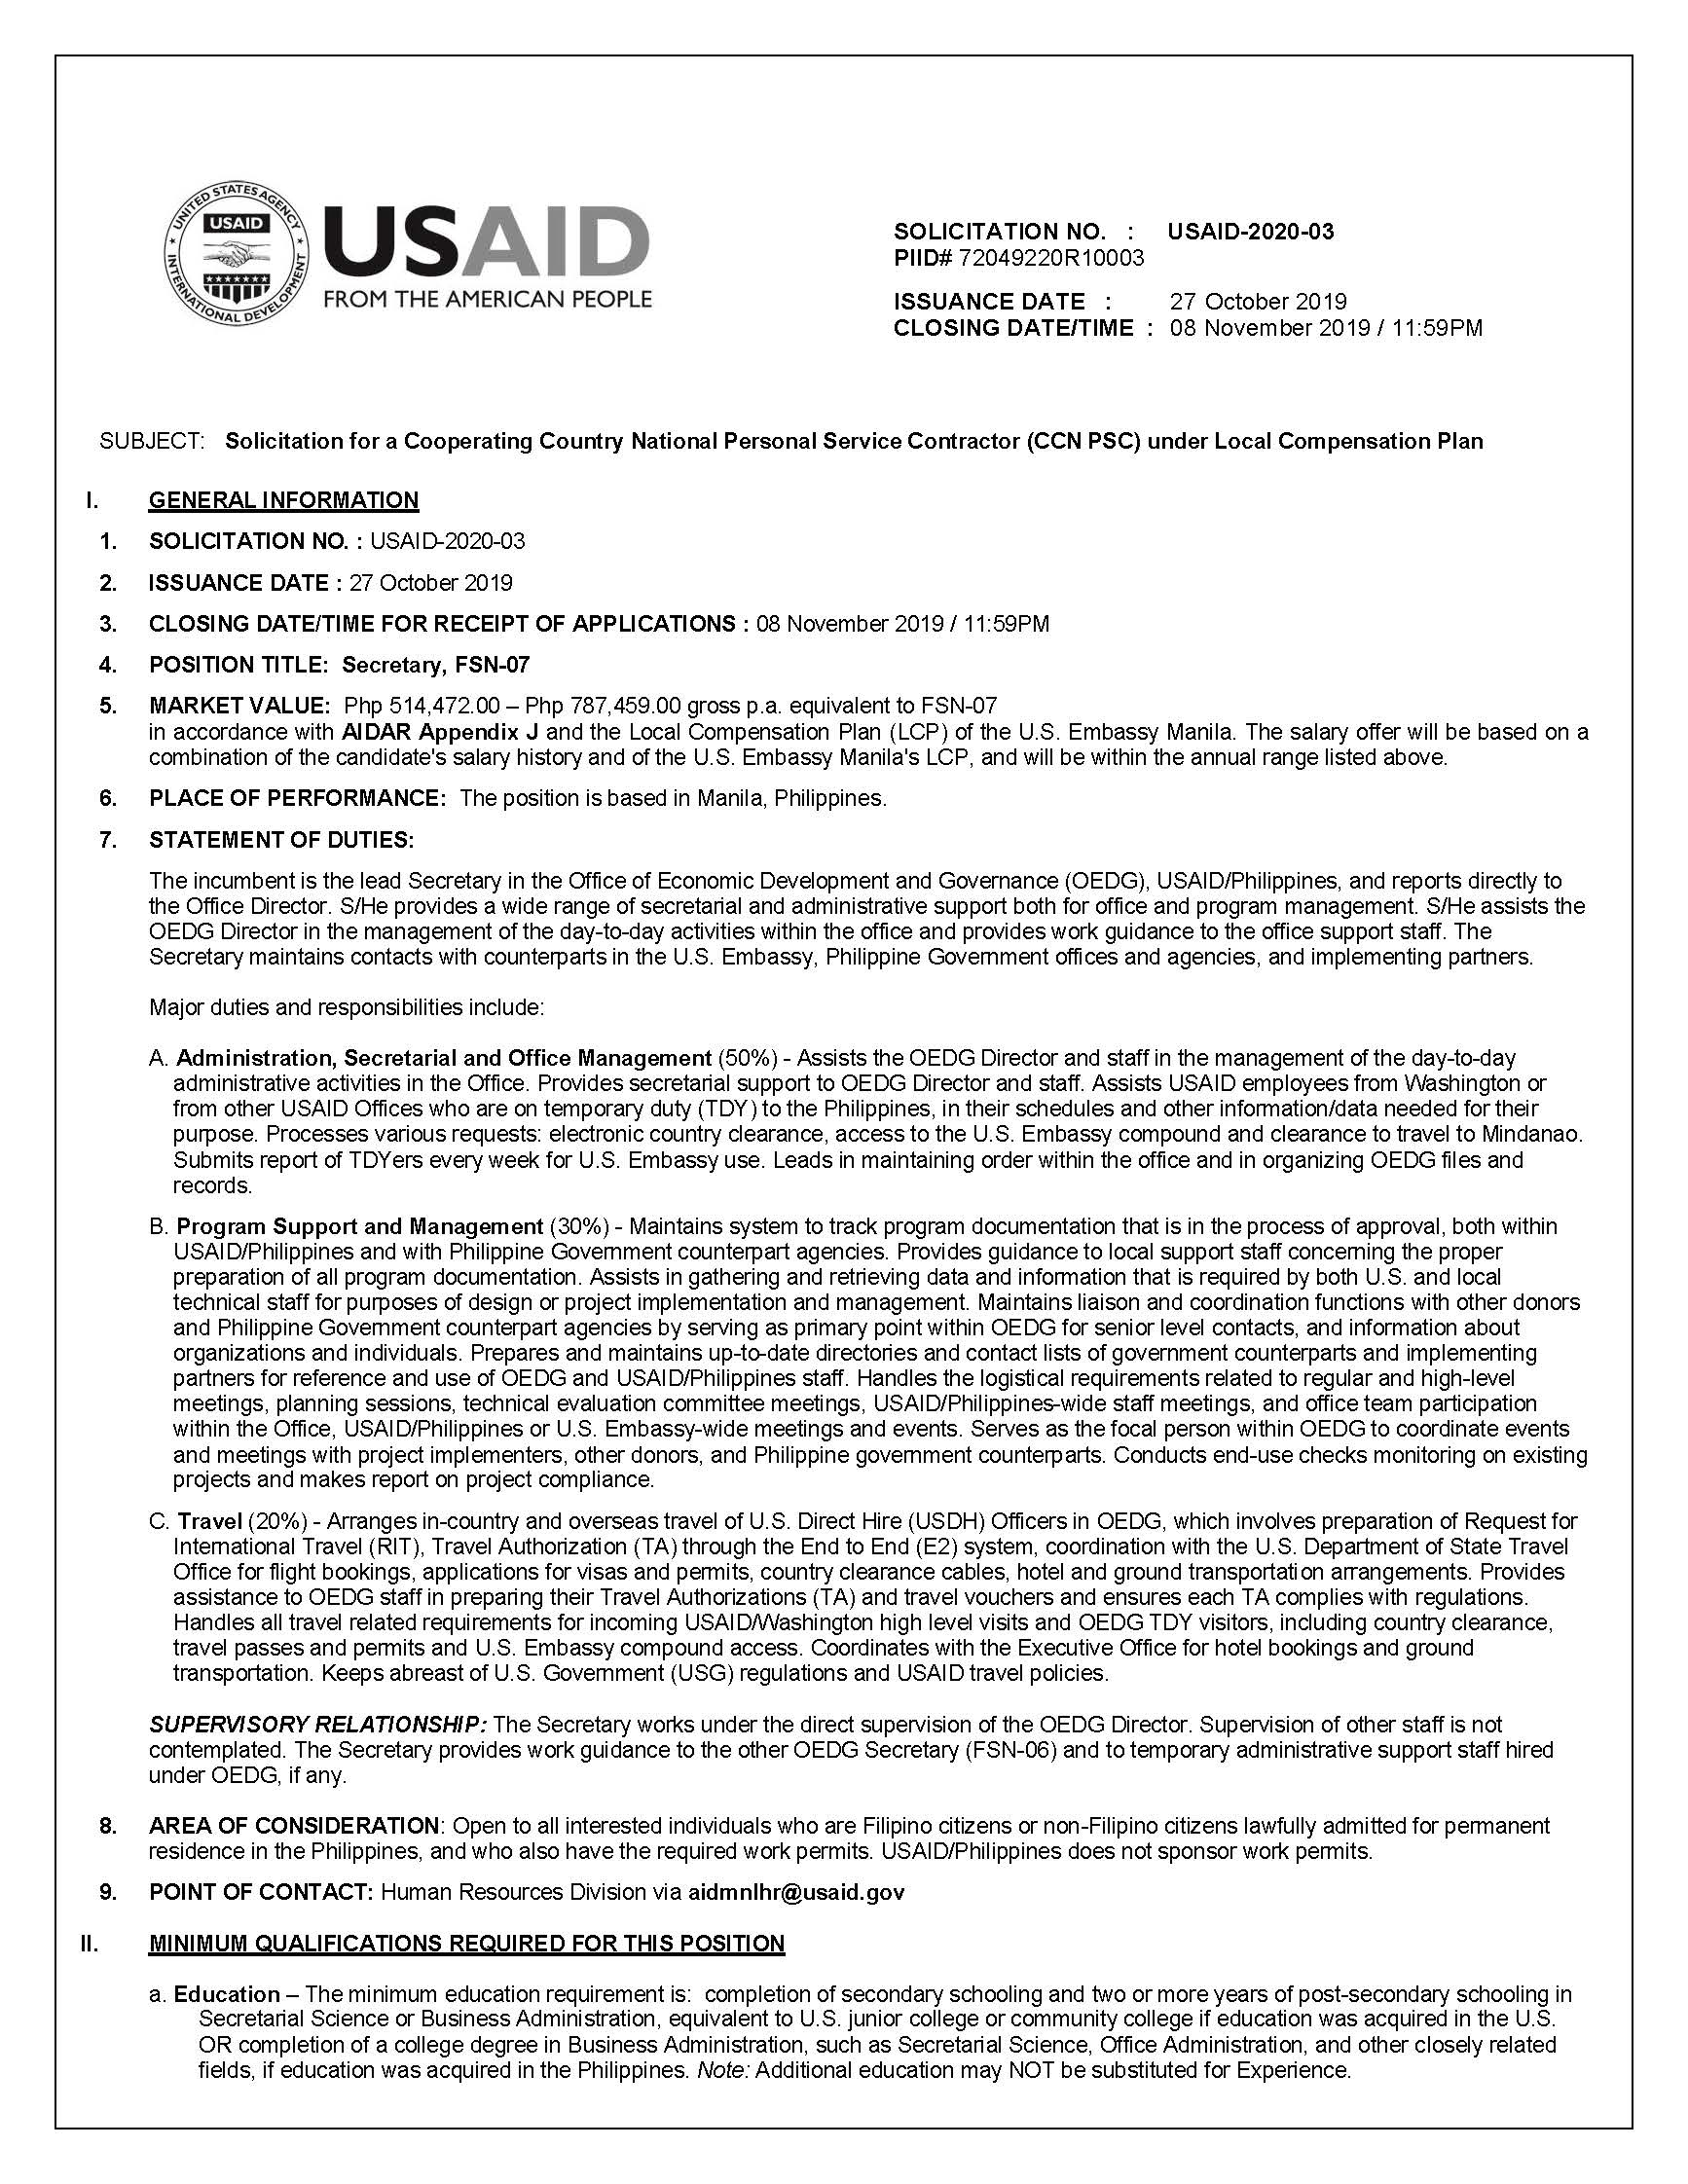 Solicitation No. USAID-2020-03: Secretary, FSN-07